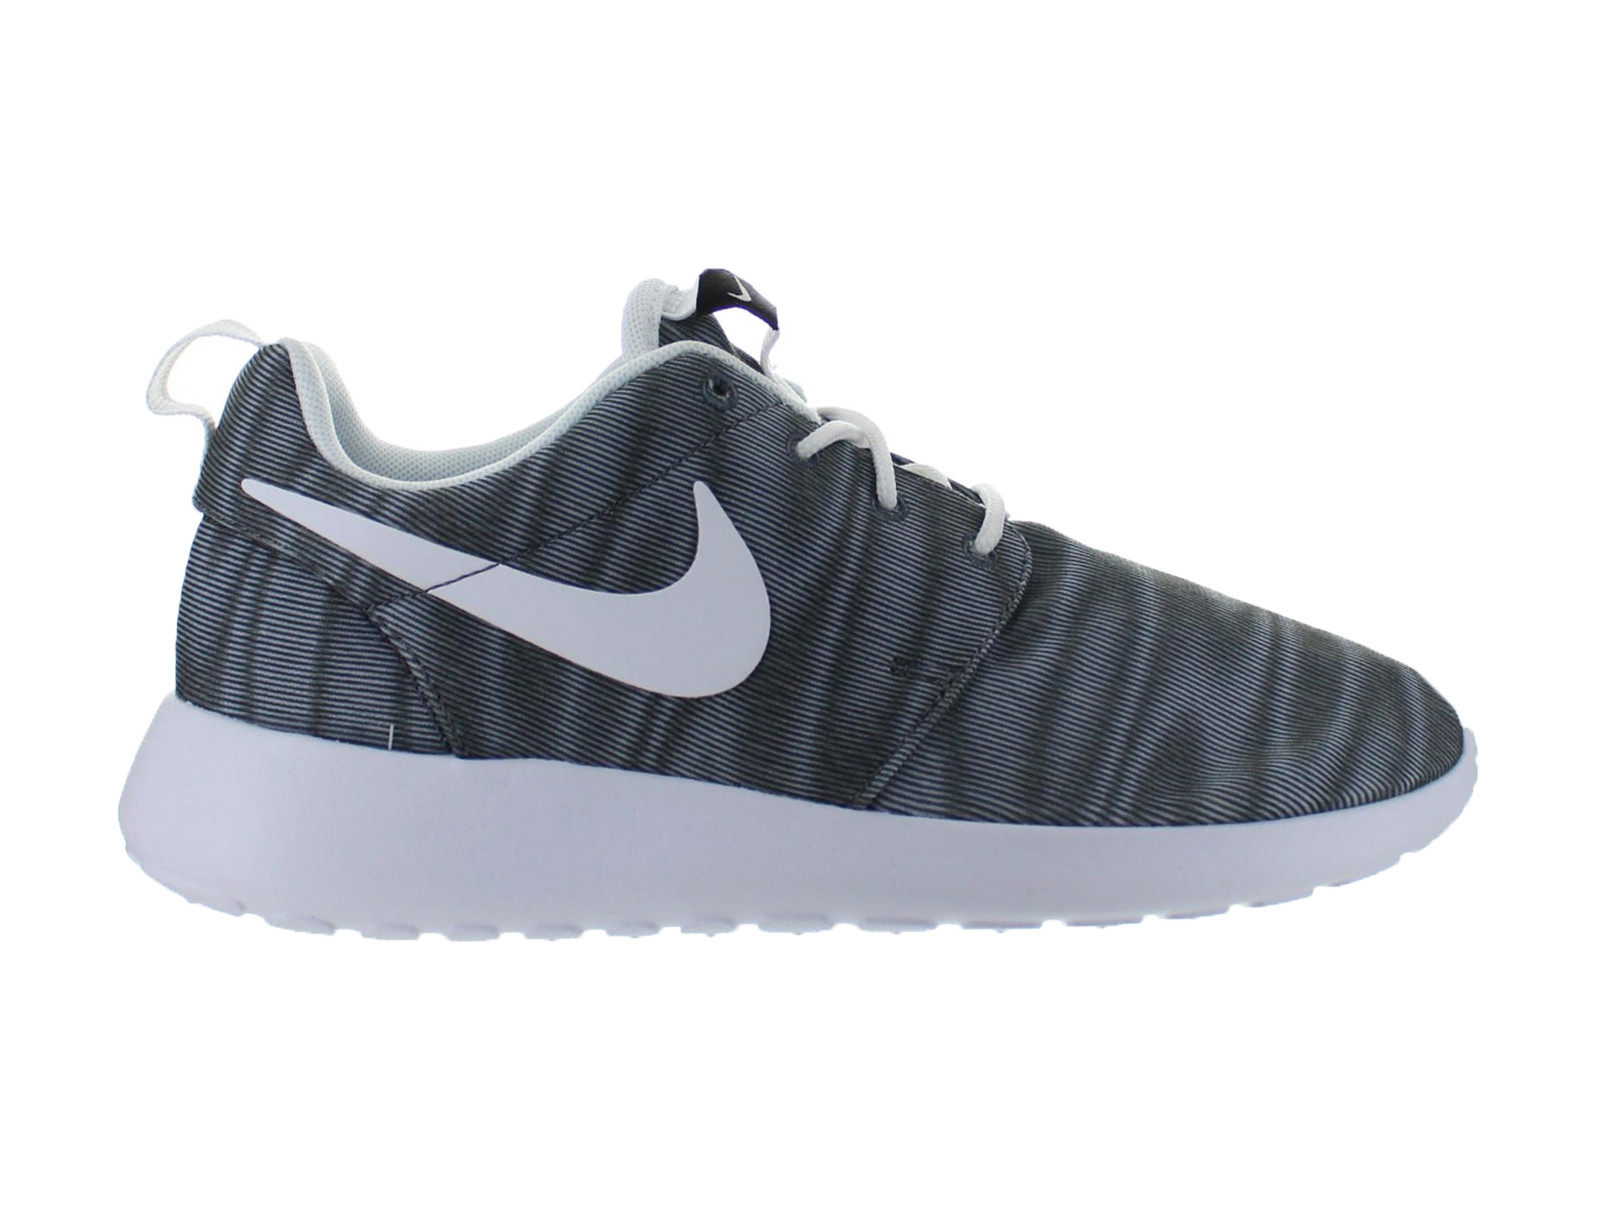 detailed pictures fb5ad ce668 ... promo code for womens nike roshe one print white black cool grey 599432  104 6f7c6 114c7